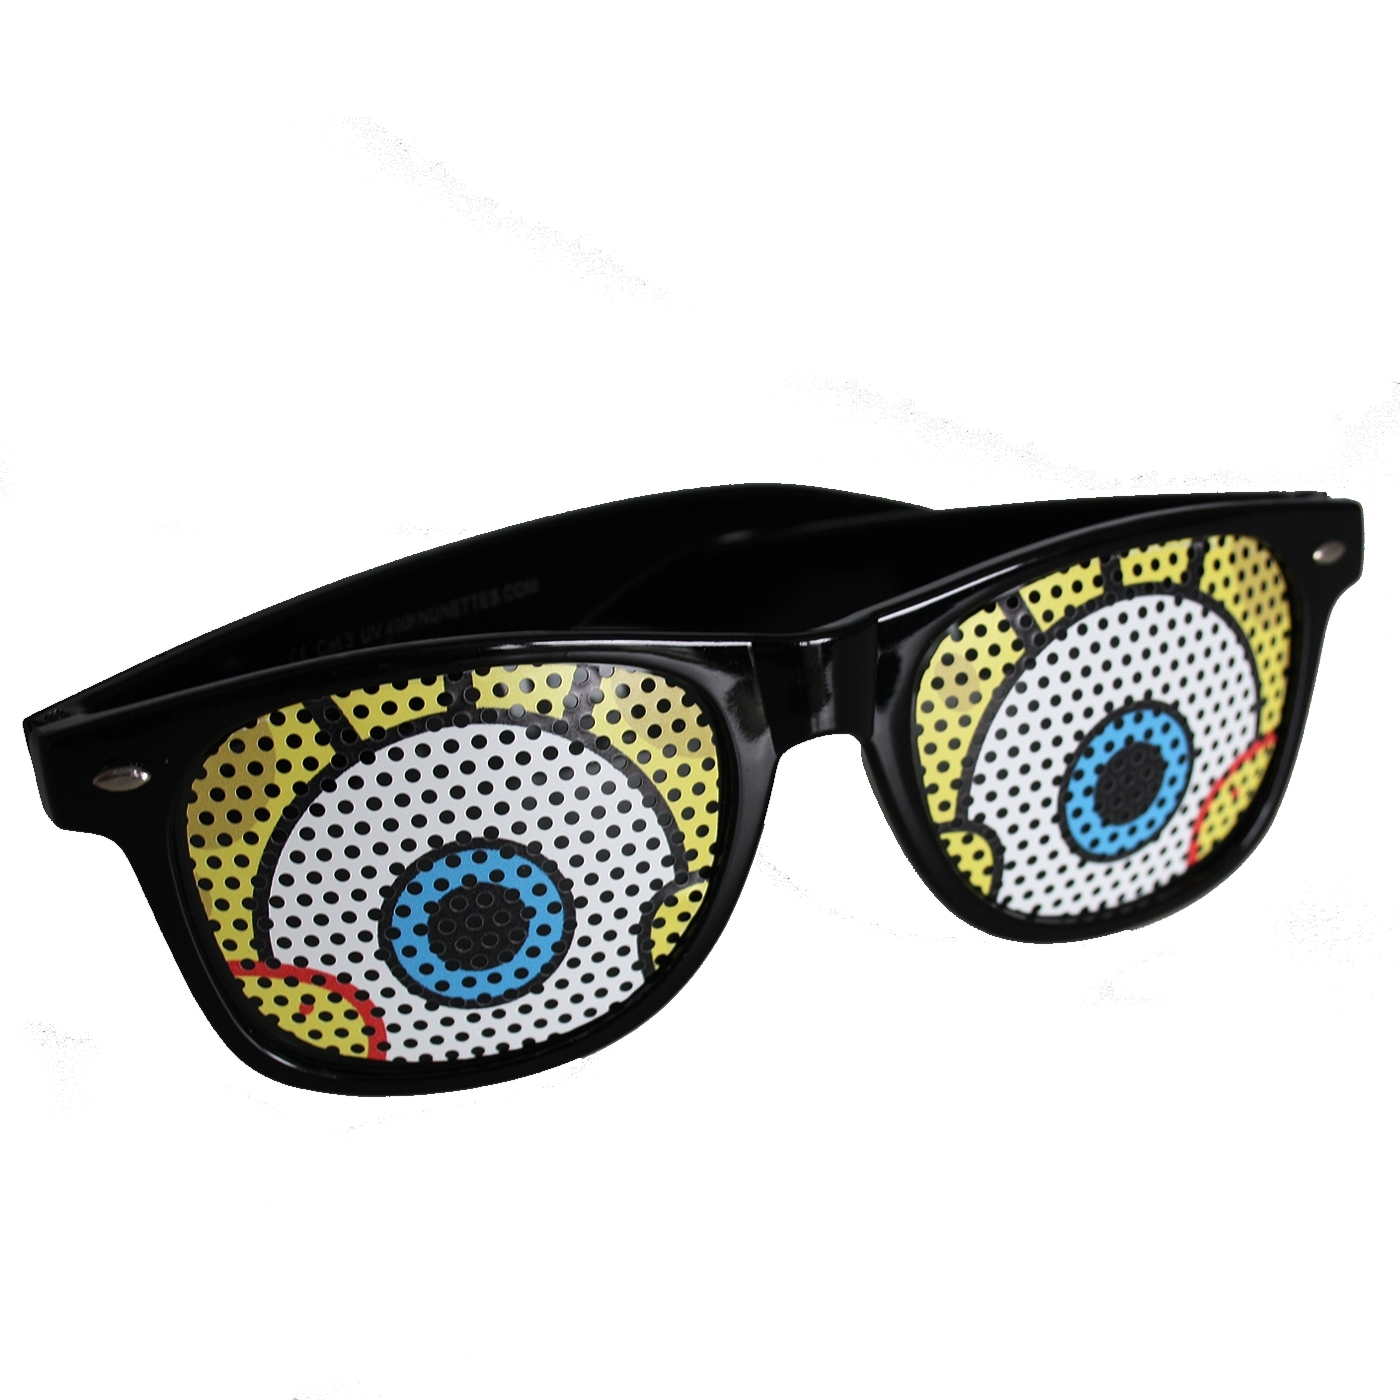 Nunettes Spongebob High Glasses Nunspongehigh